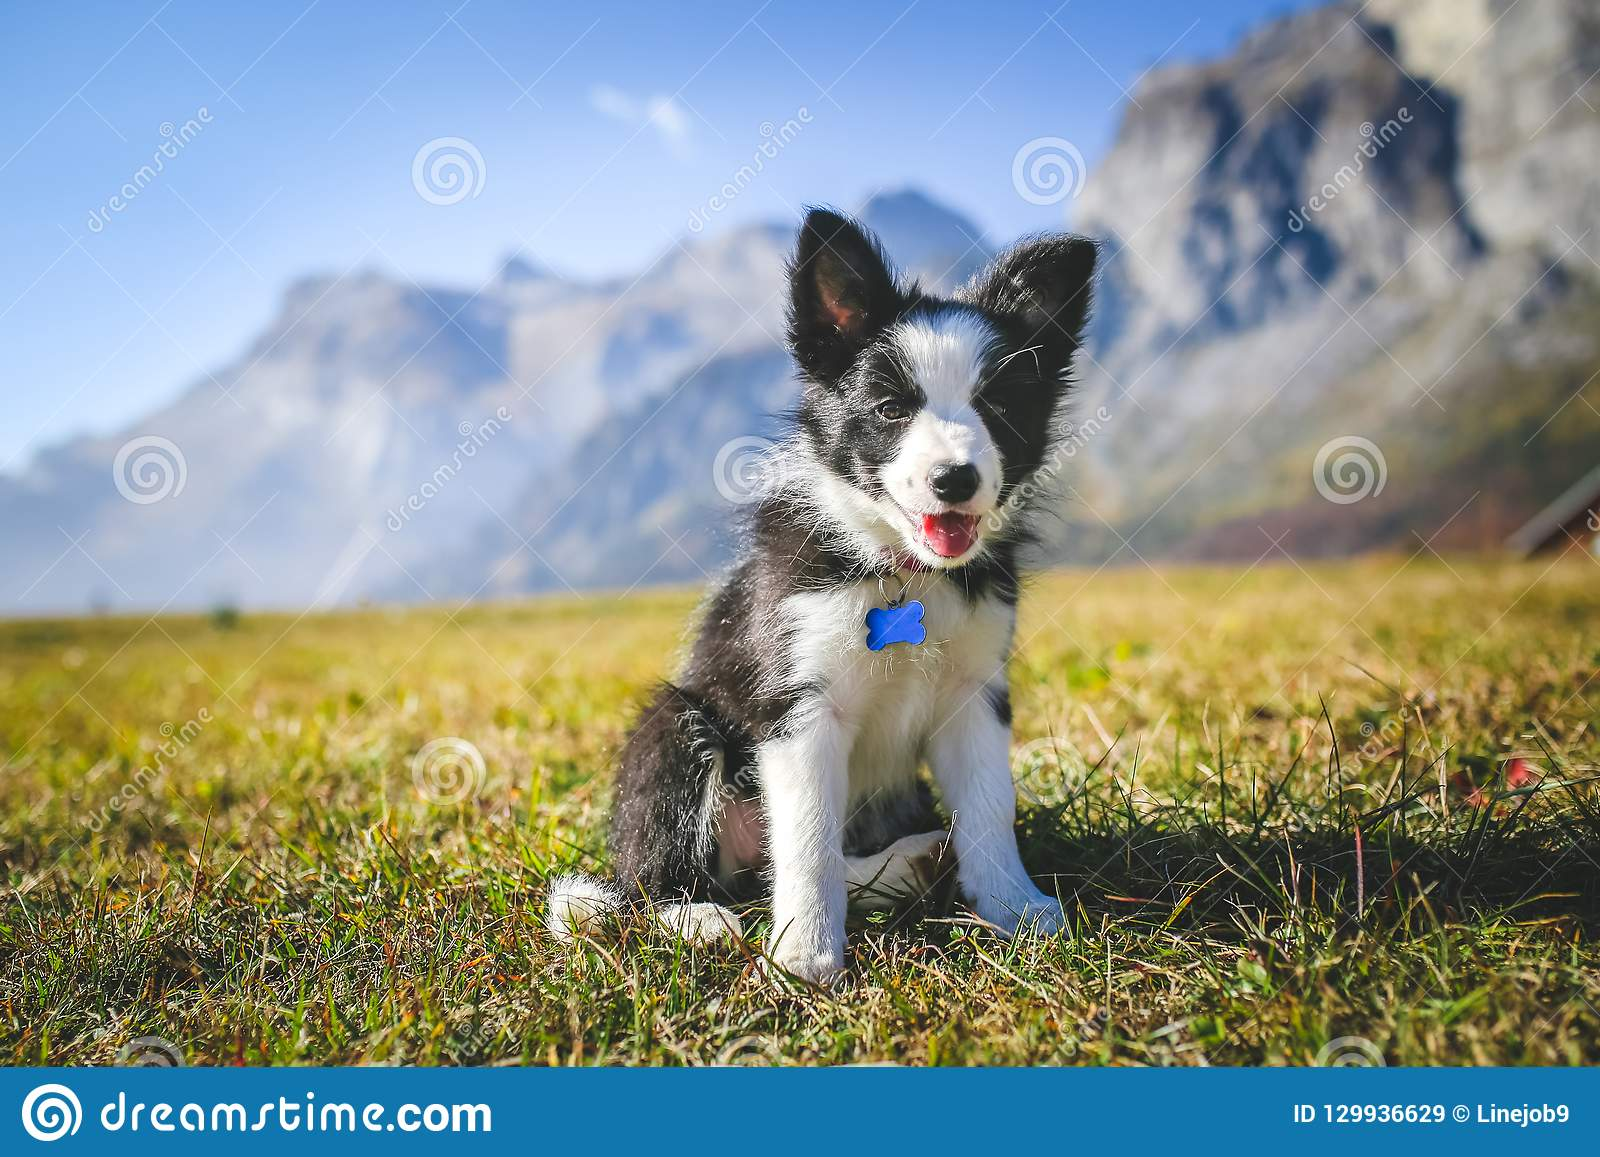 Border collie puppy on a field